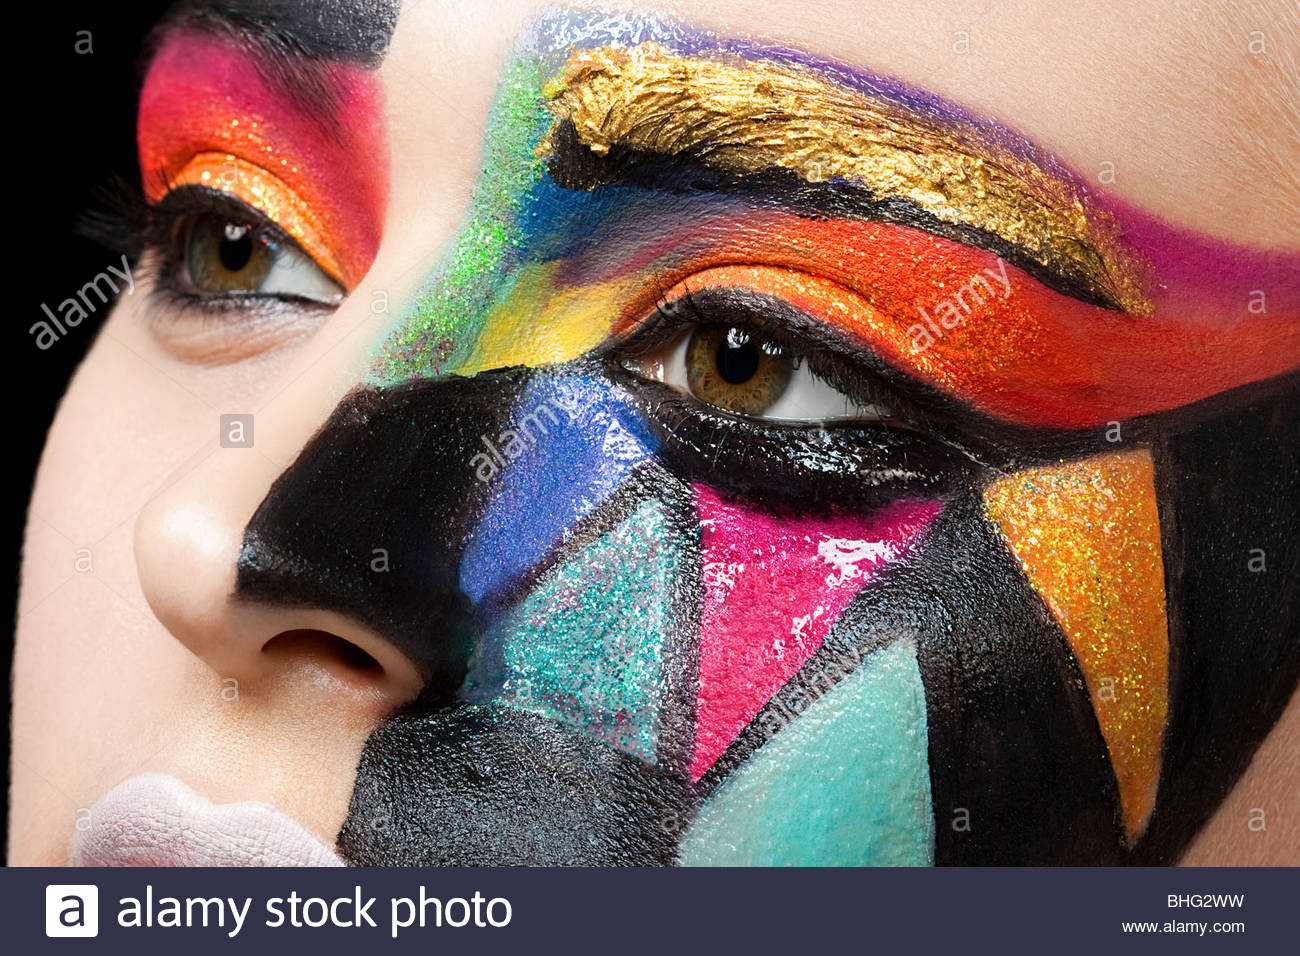 Woman with colourful pattern on face - Stock Image